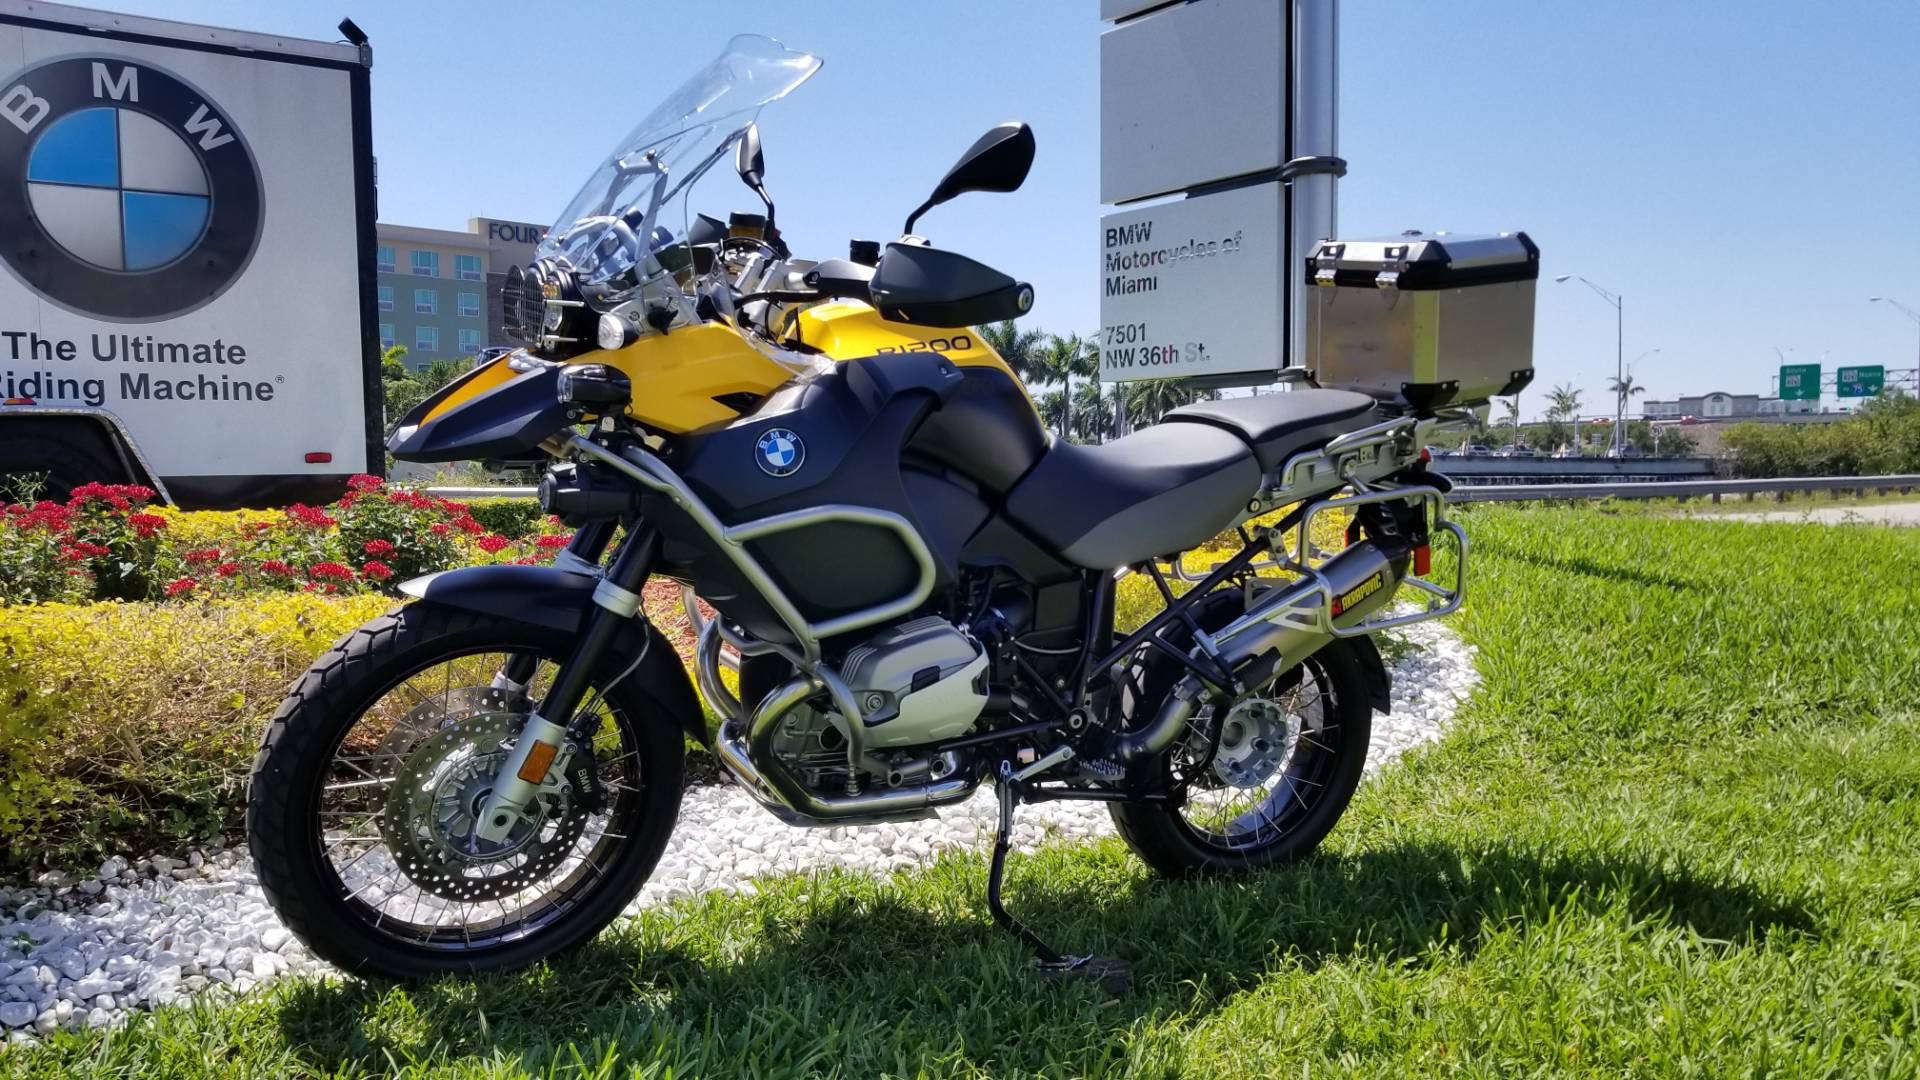 Used 2011 BMW R 1200 GSA For Sale, Pre owned BMW R 1200GSA For Sale, BMW Motorcycle R1200GSA, BMW Motorcycles of Miami, Motorcycles of Miami, Motorcycles Miami - Photo 5